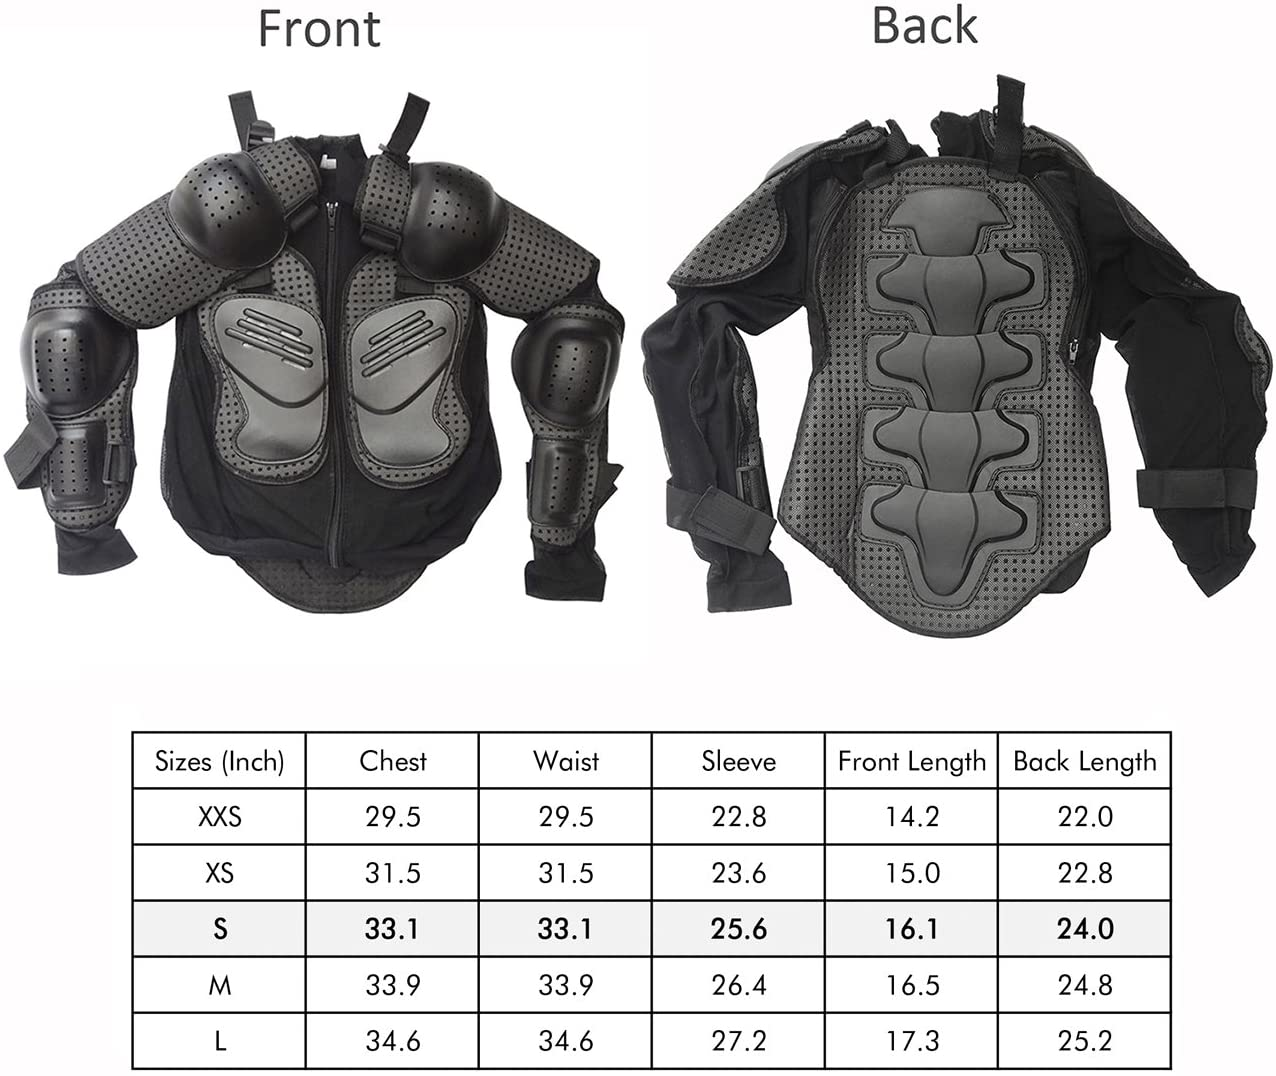 Children Breast Chest Spine Protector Motorcycle Motocross Dirt Bike Racing Skiing Skating Sports ATV Safety Gear Guard Black TDPRO Kids Full Body Armor Protective Jacket XS